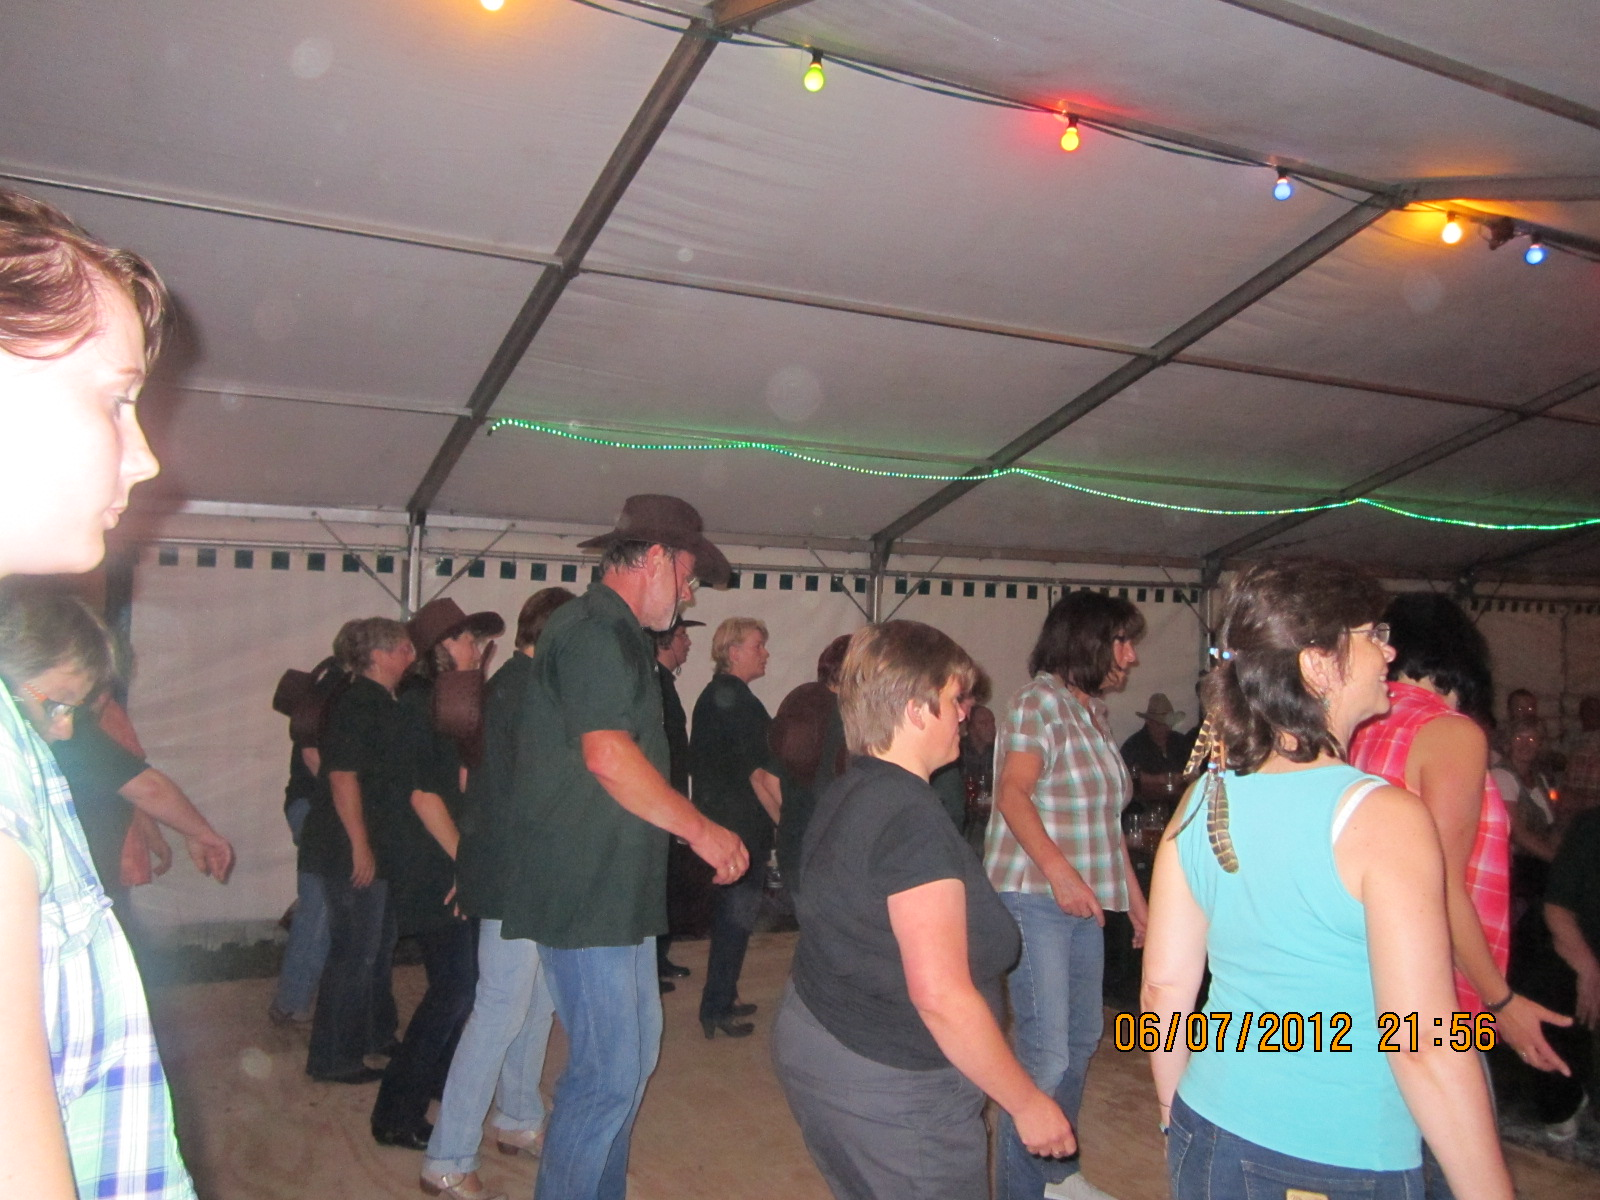 1. Country Nacht in Mittweida